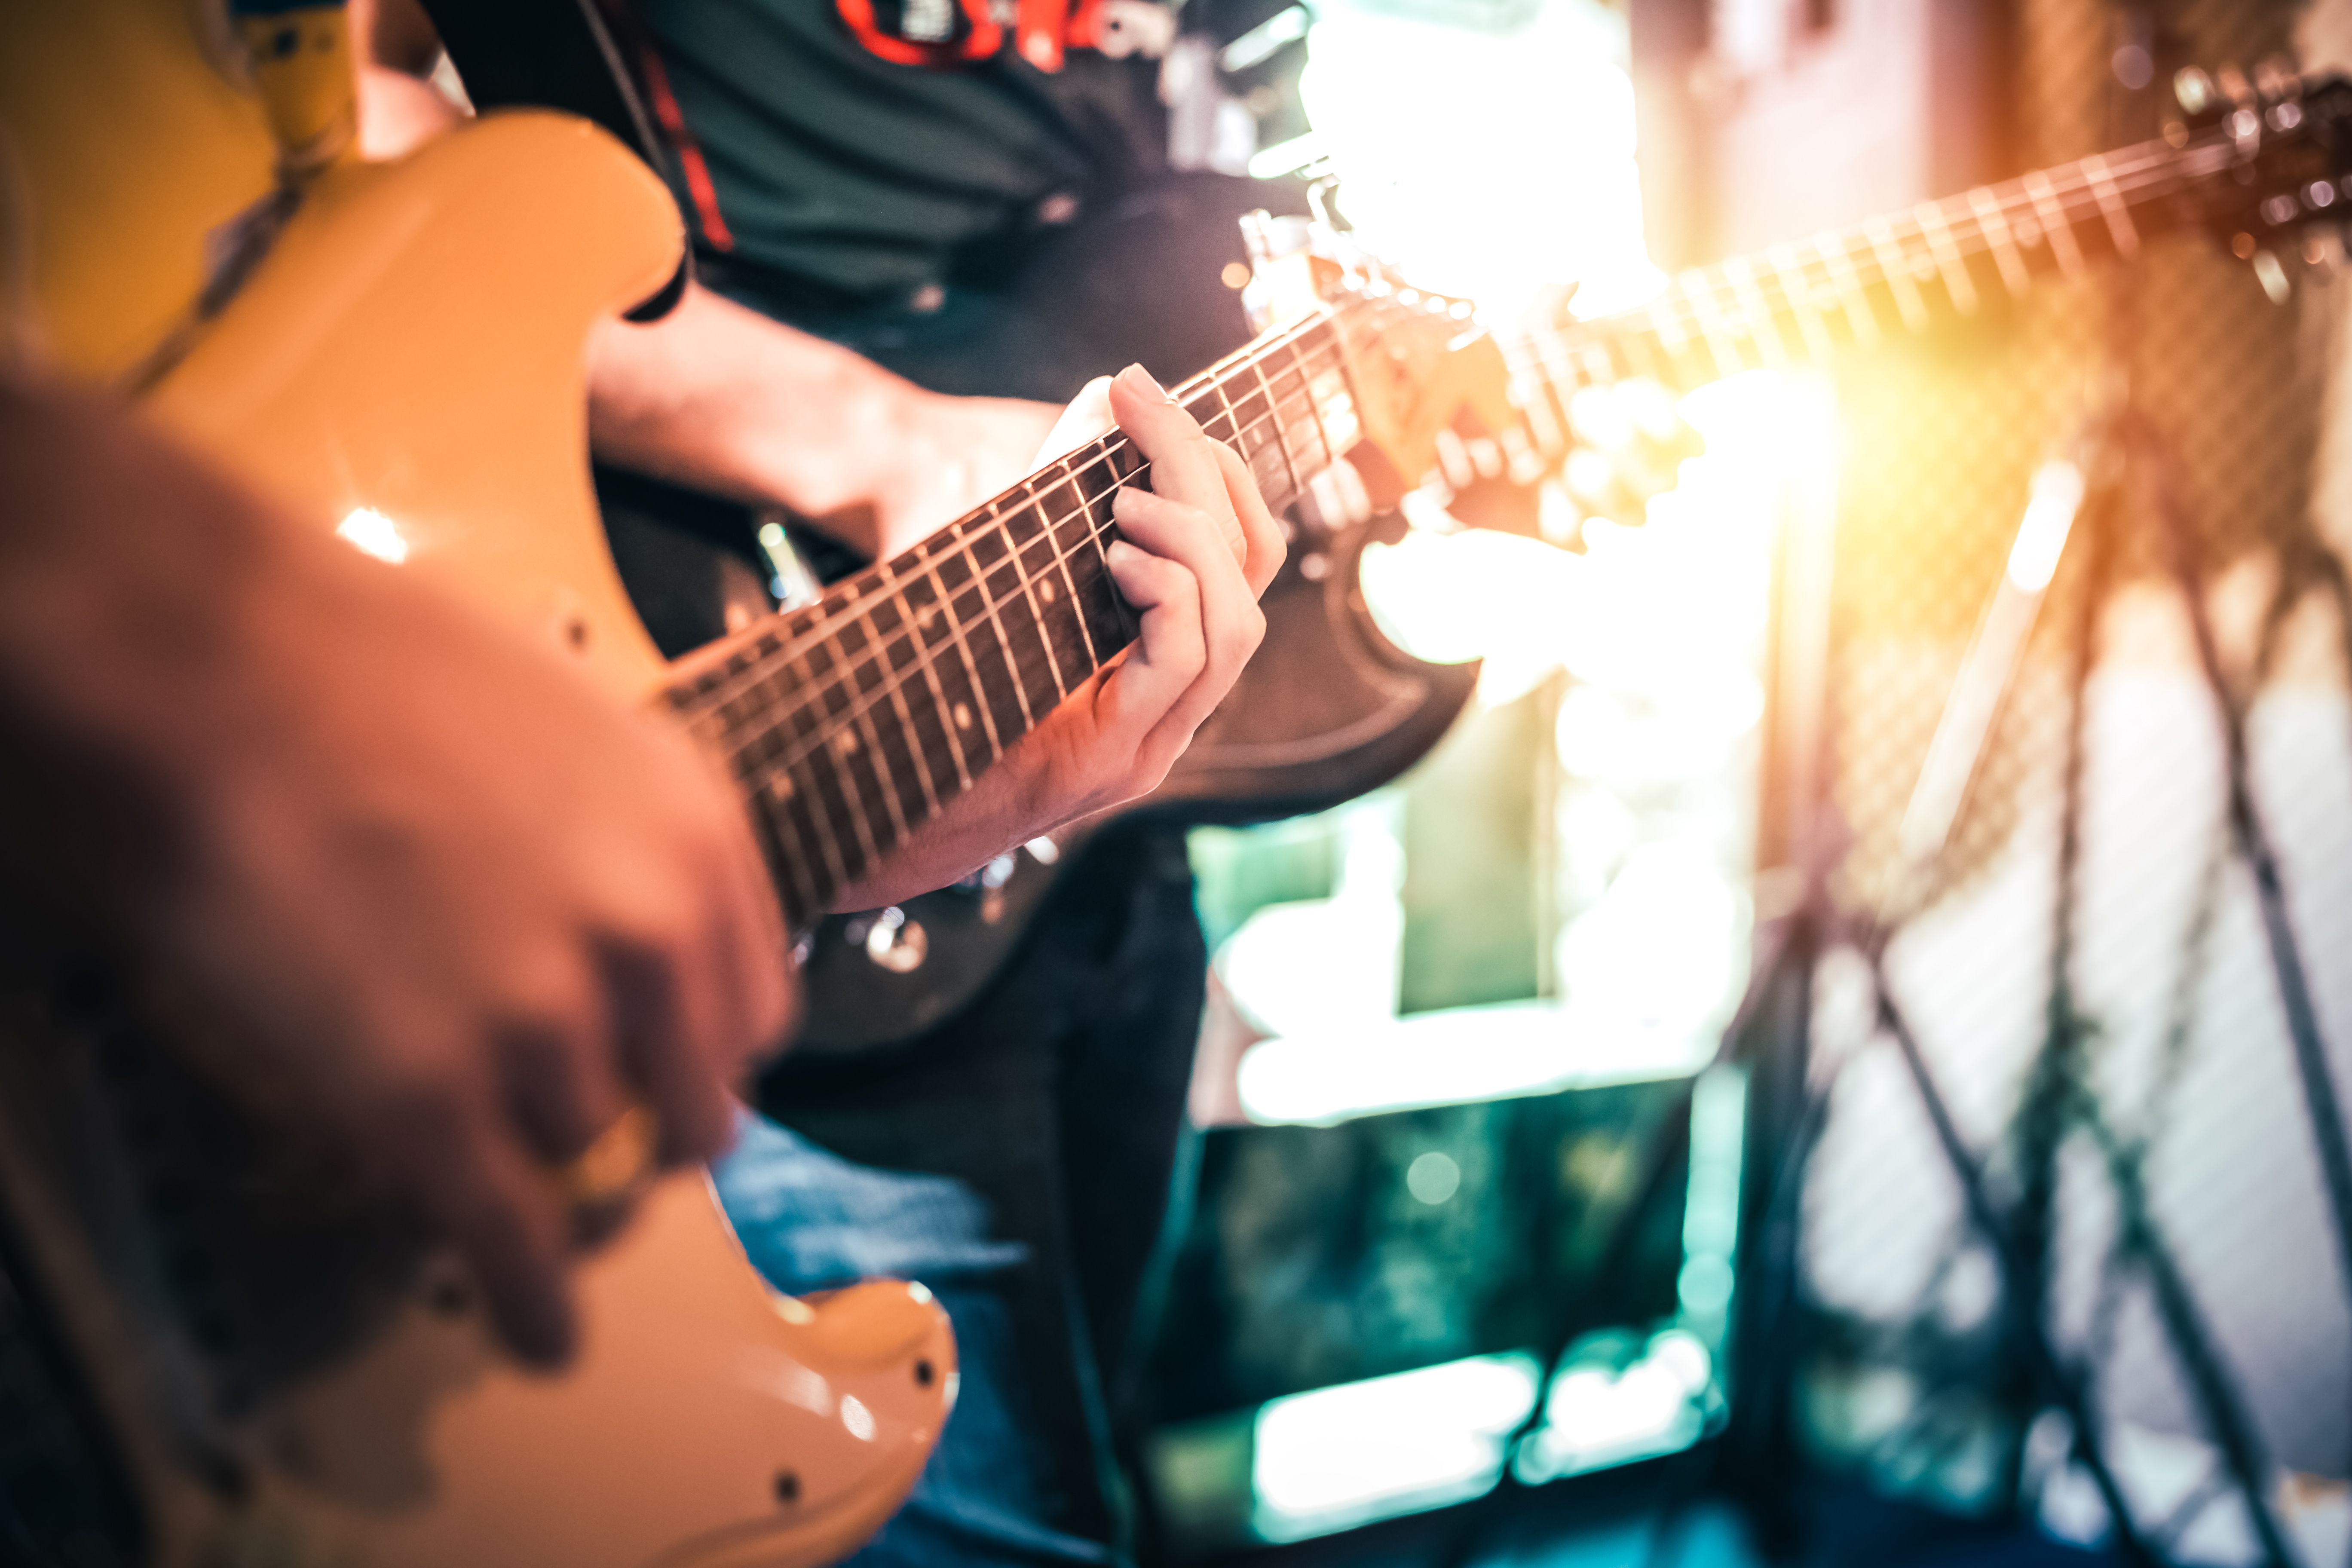 The Best Guitar Buys For Any Budget